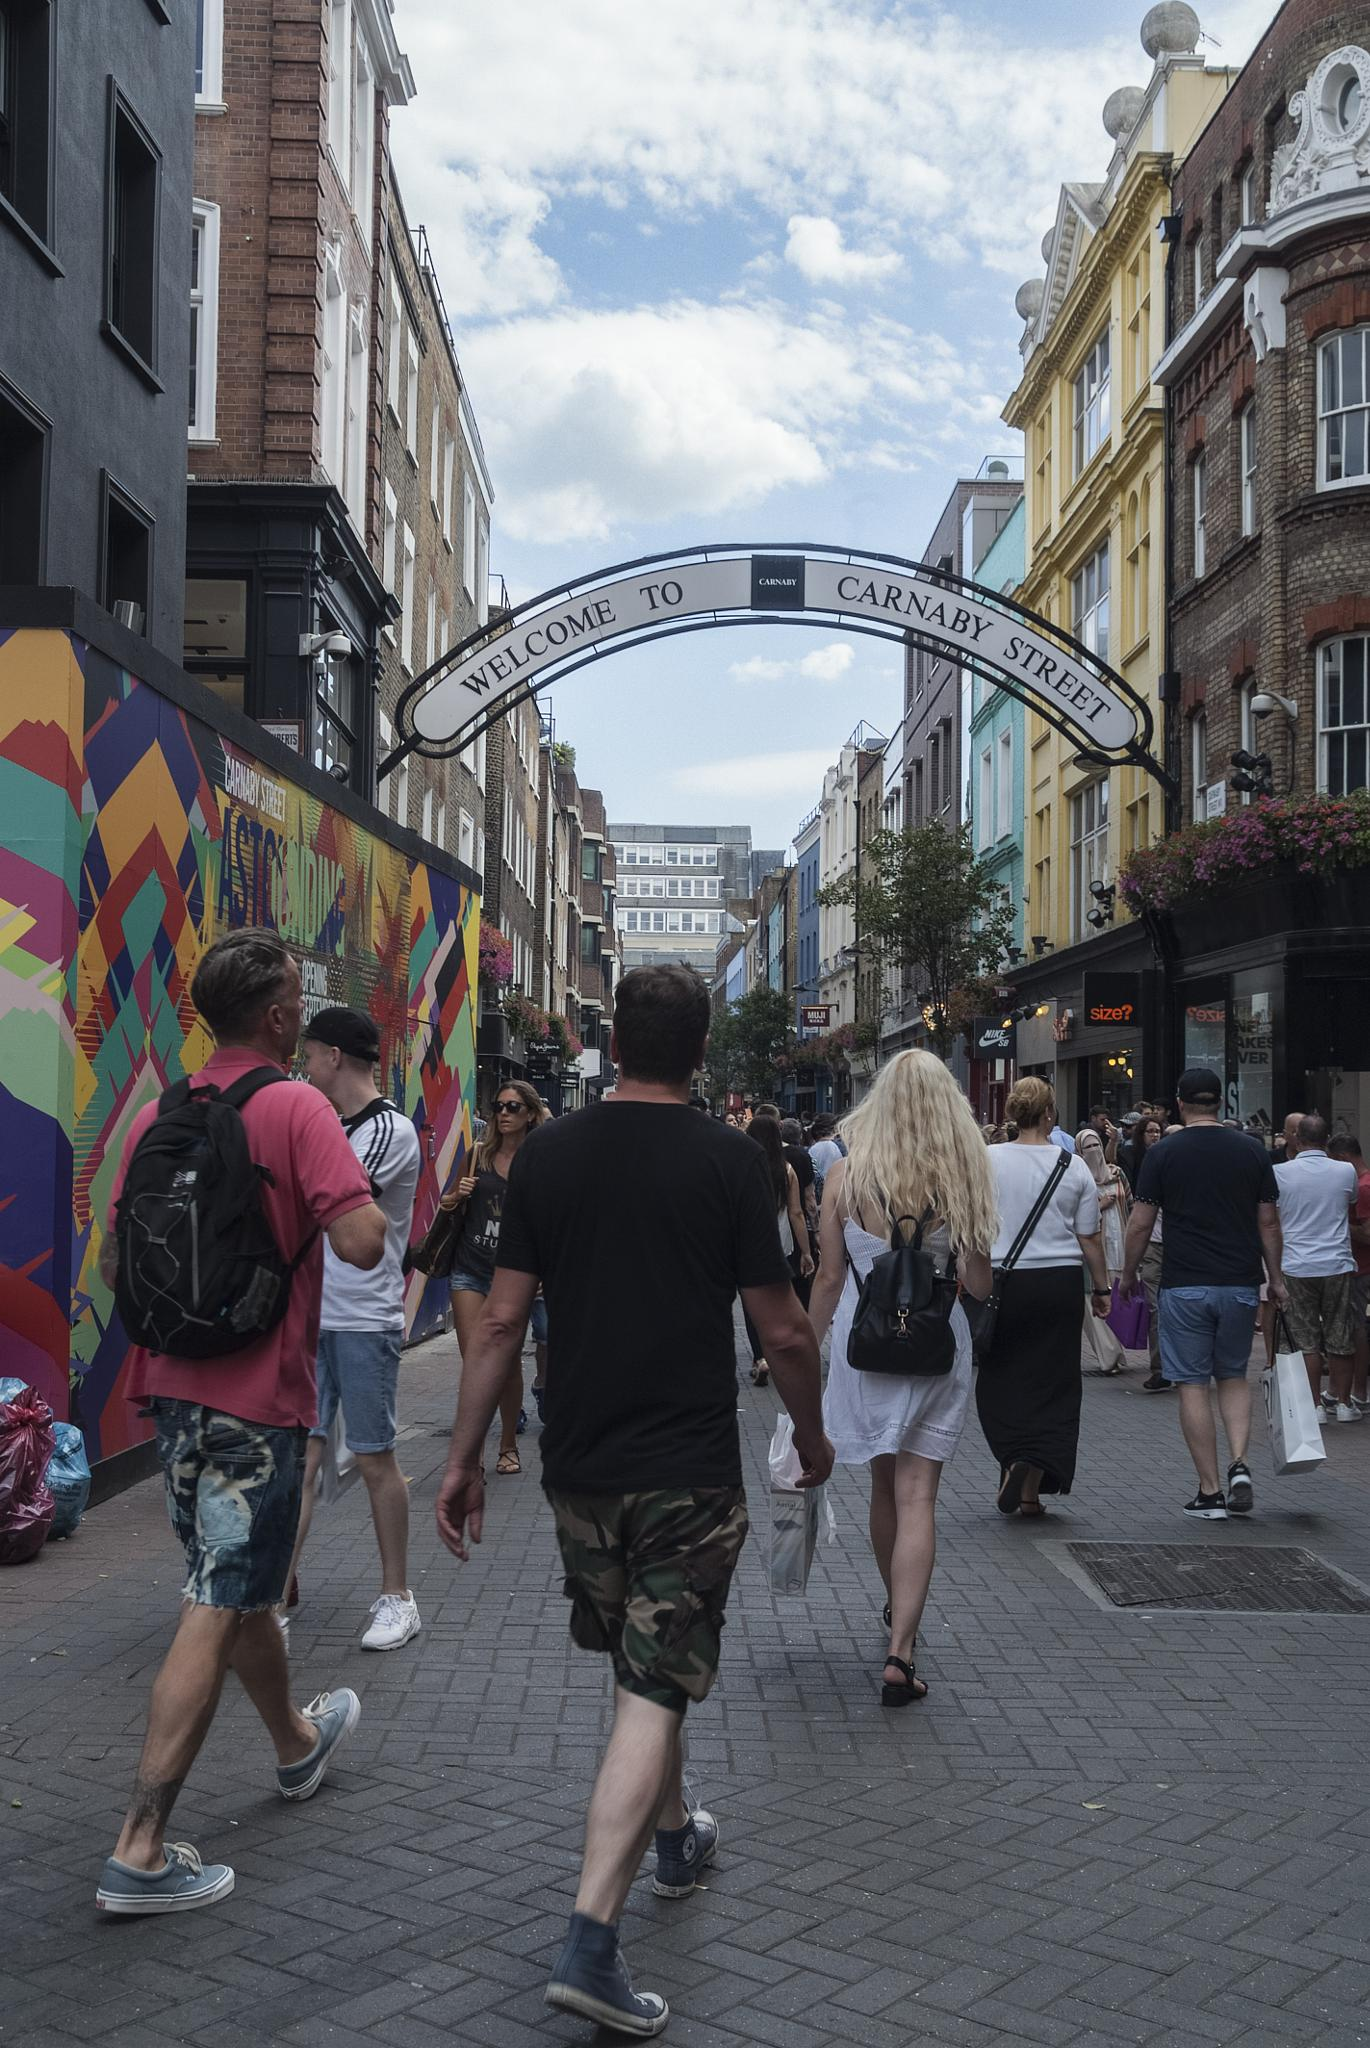 Carnaby Street London by Jim Hellier